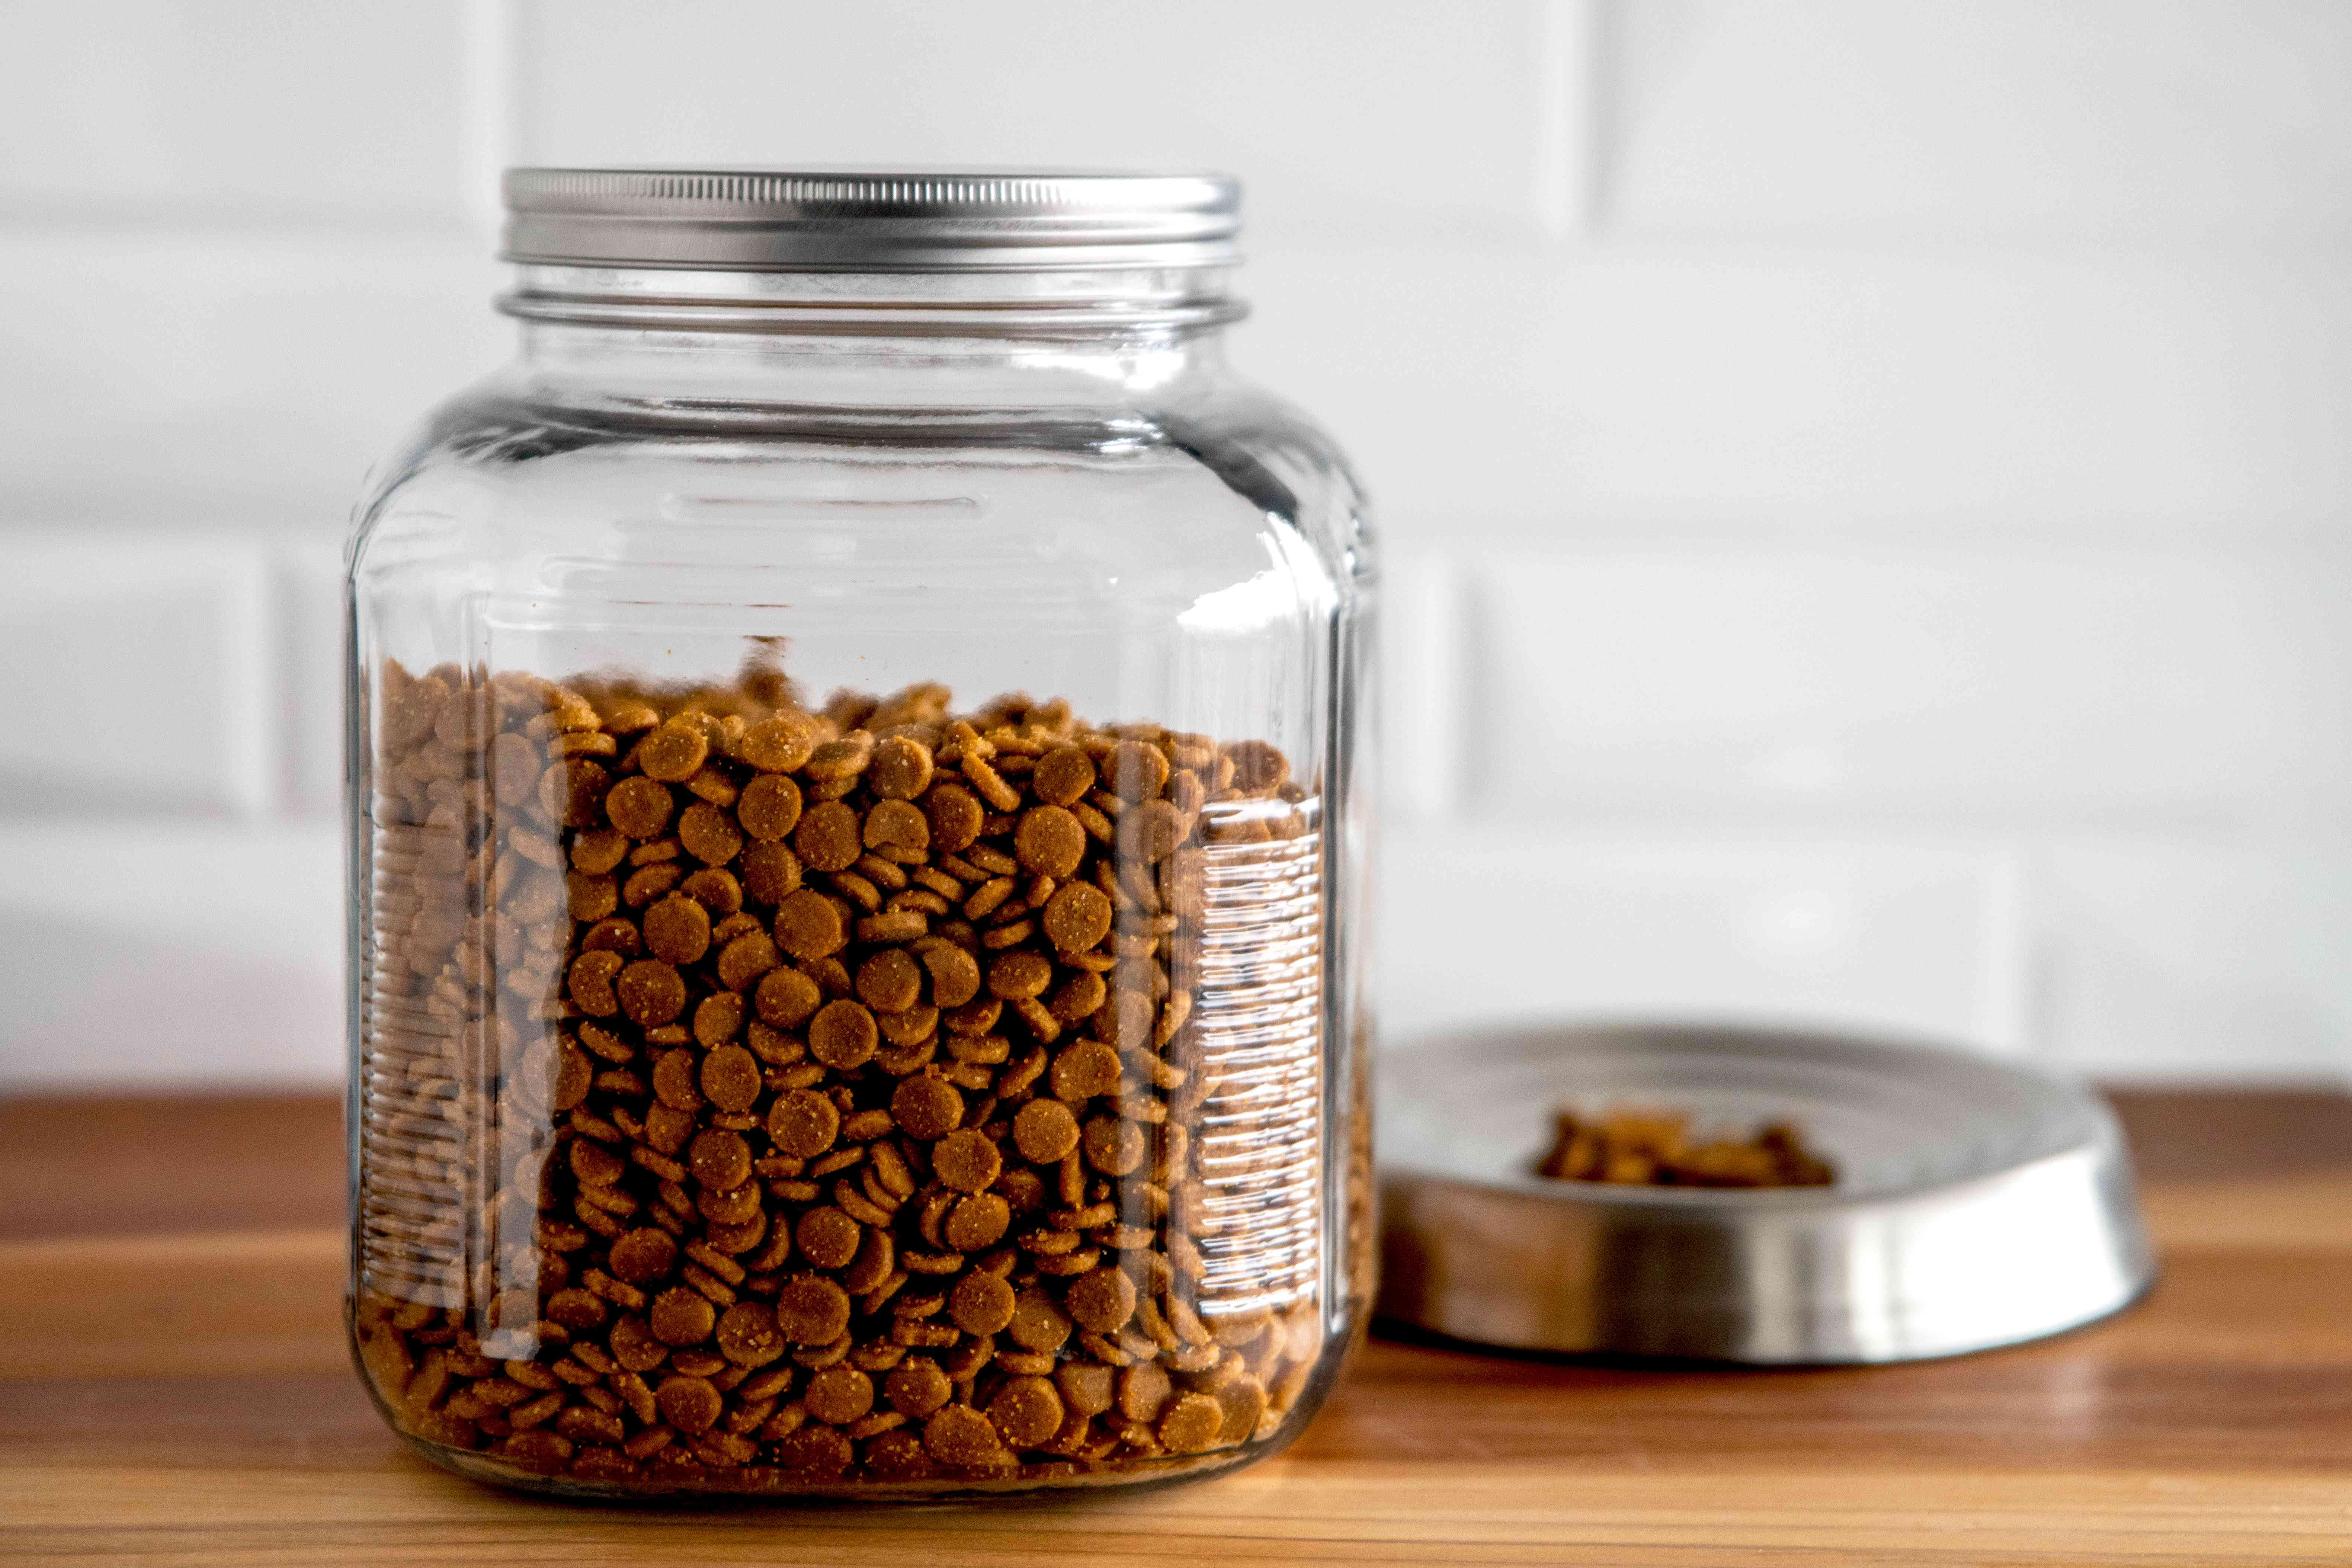 Pet food stored in closed glass container next to pan with some dog food pieces